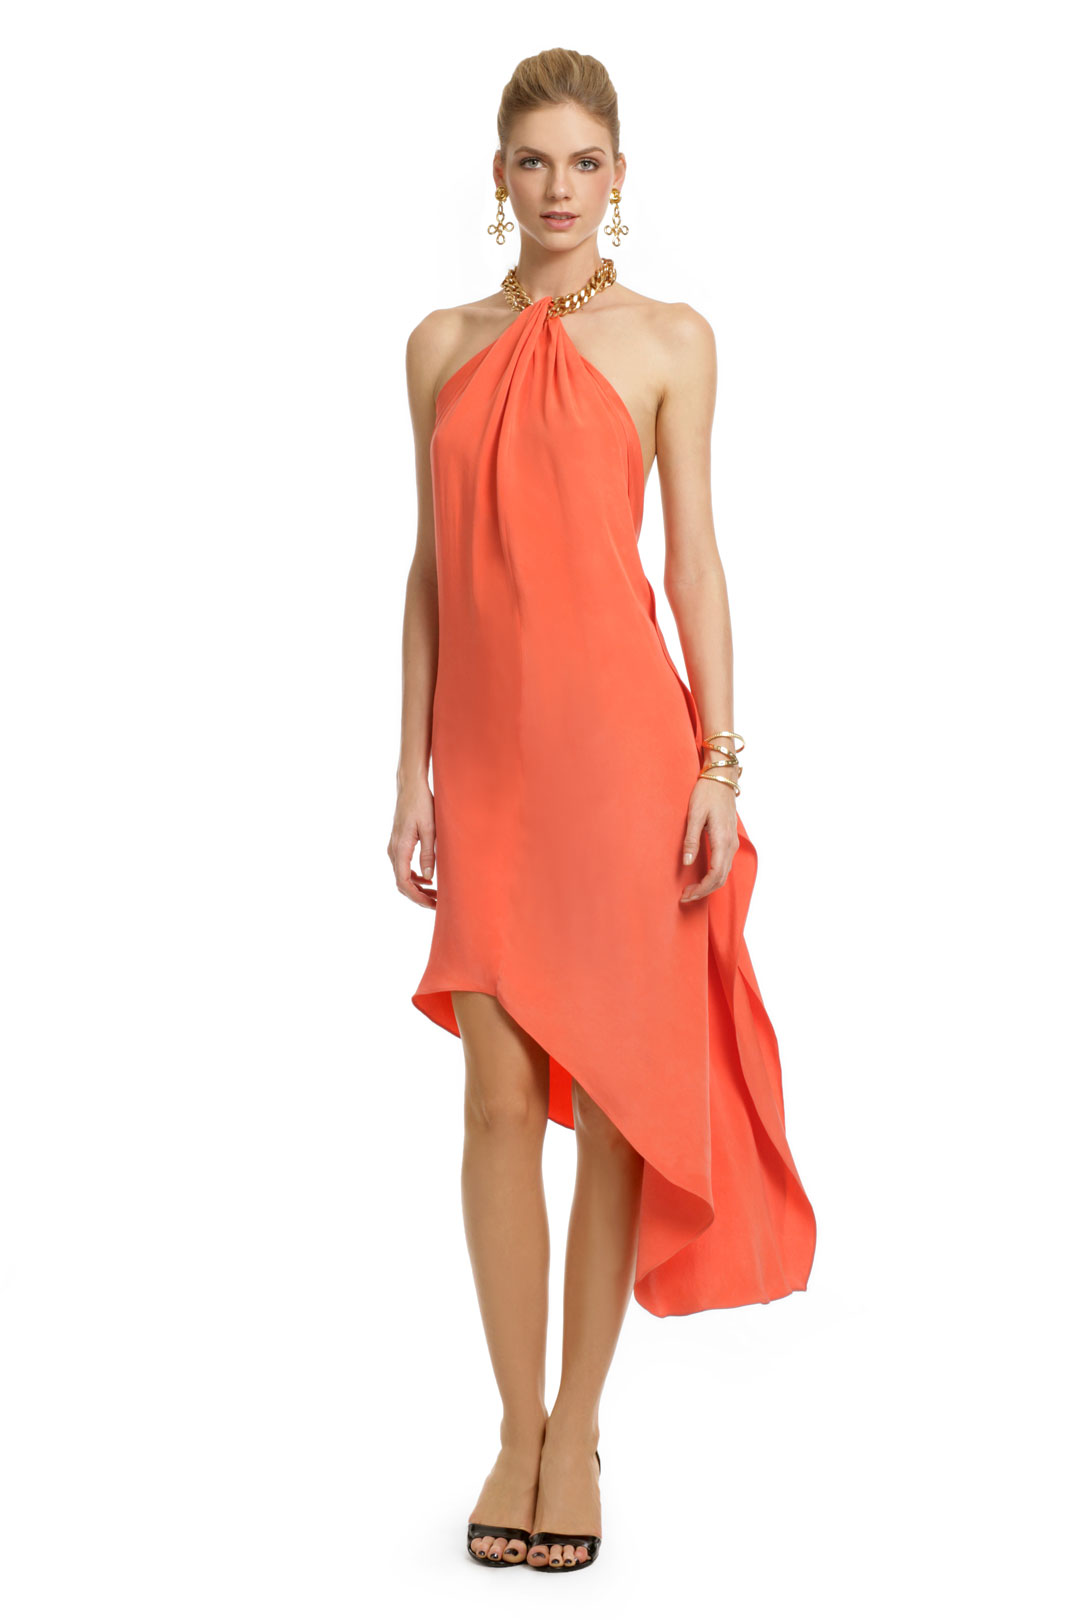 Asymmetric Island Chain Dress by Robert Rodriguez Black Label at $85 | Rent The Runway